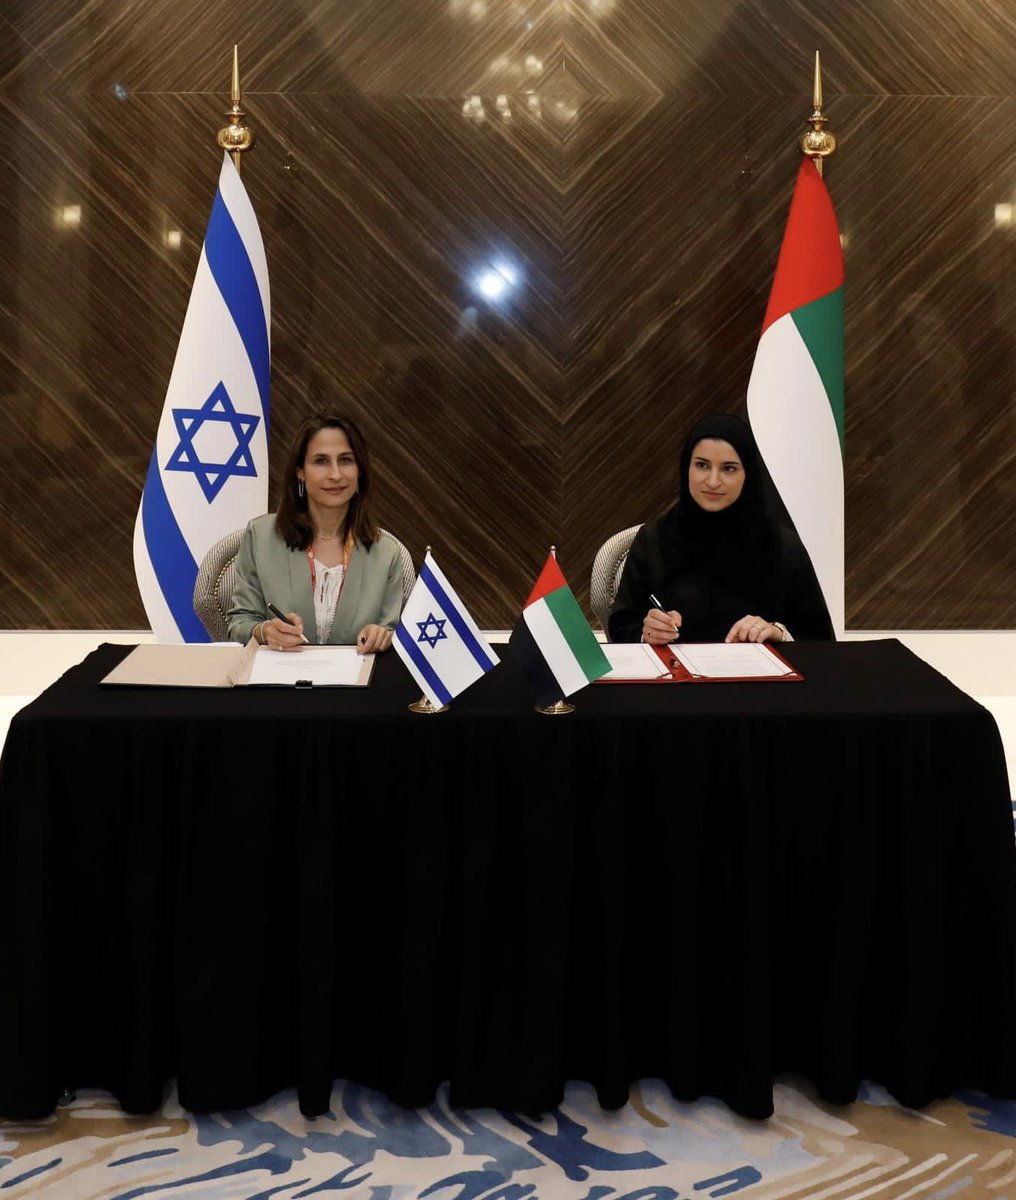 MoU on Cooperation in the Field of Outer space was signed today between the UAE and Israel. The MoU was…